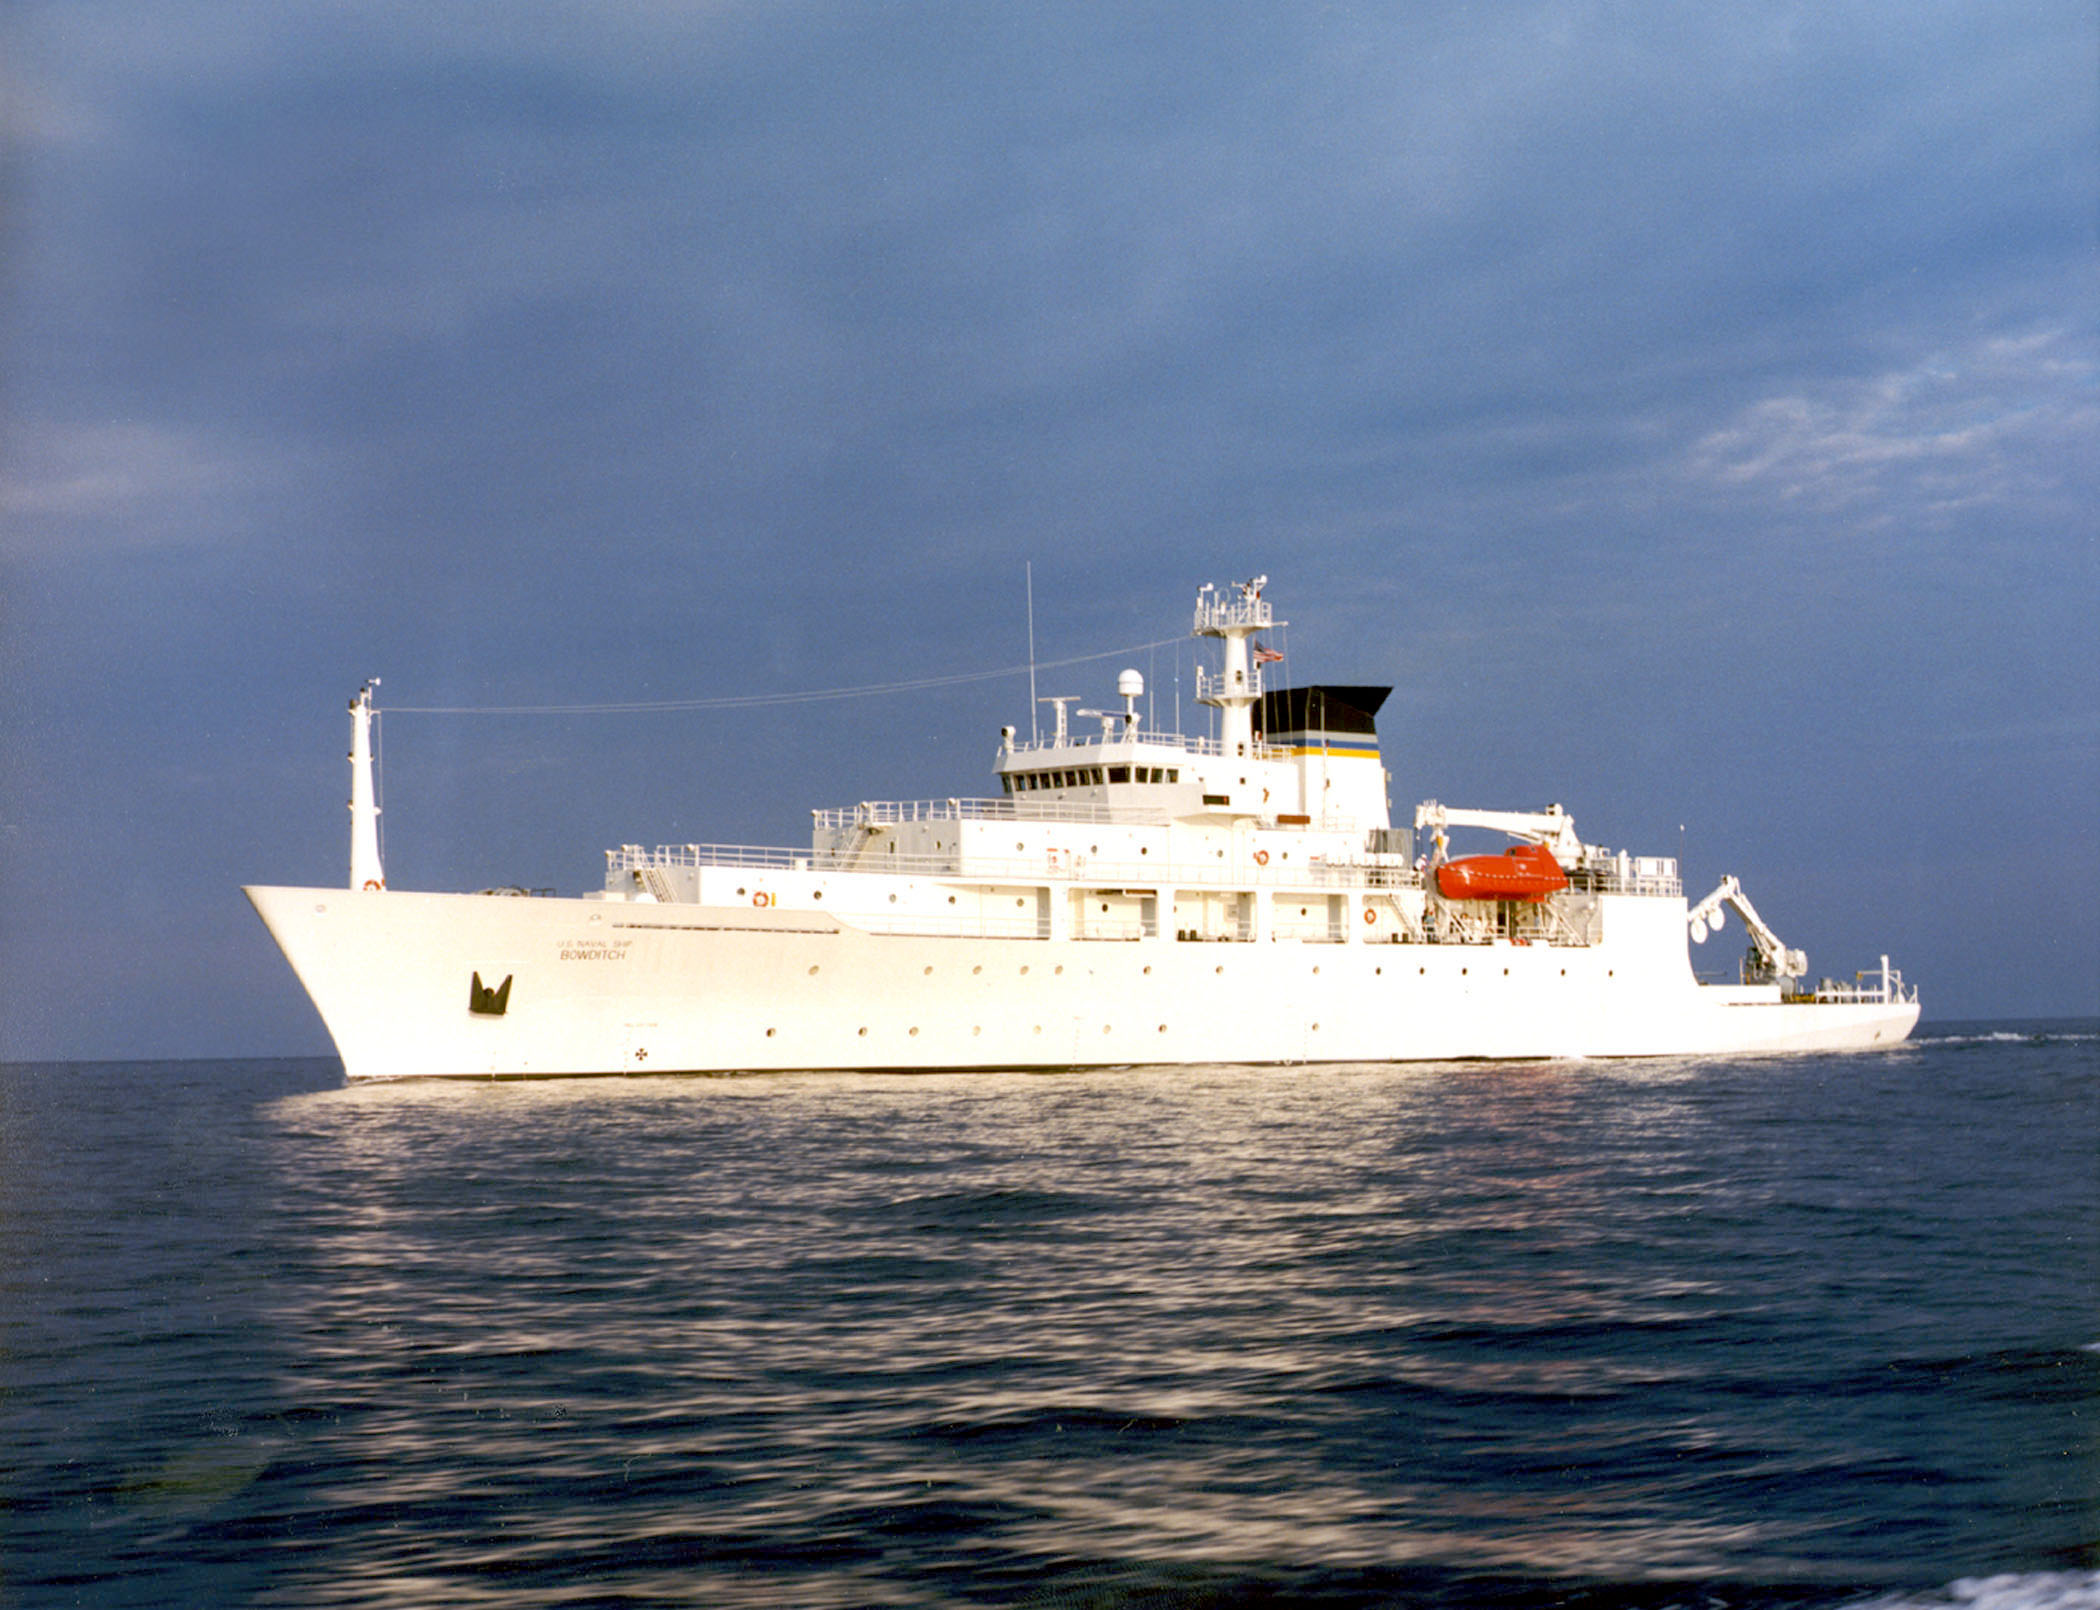 The USNS Bowditch, an oceanographic survey ship, is seen in this undated U.S. Navy